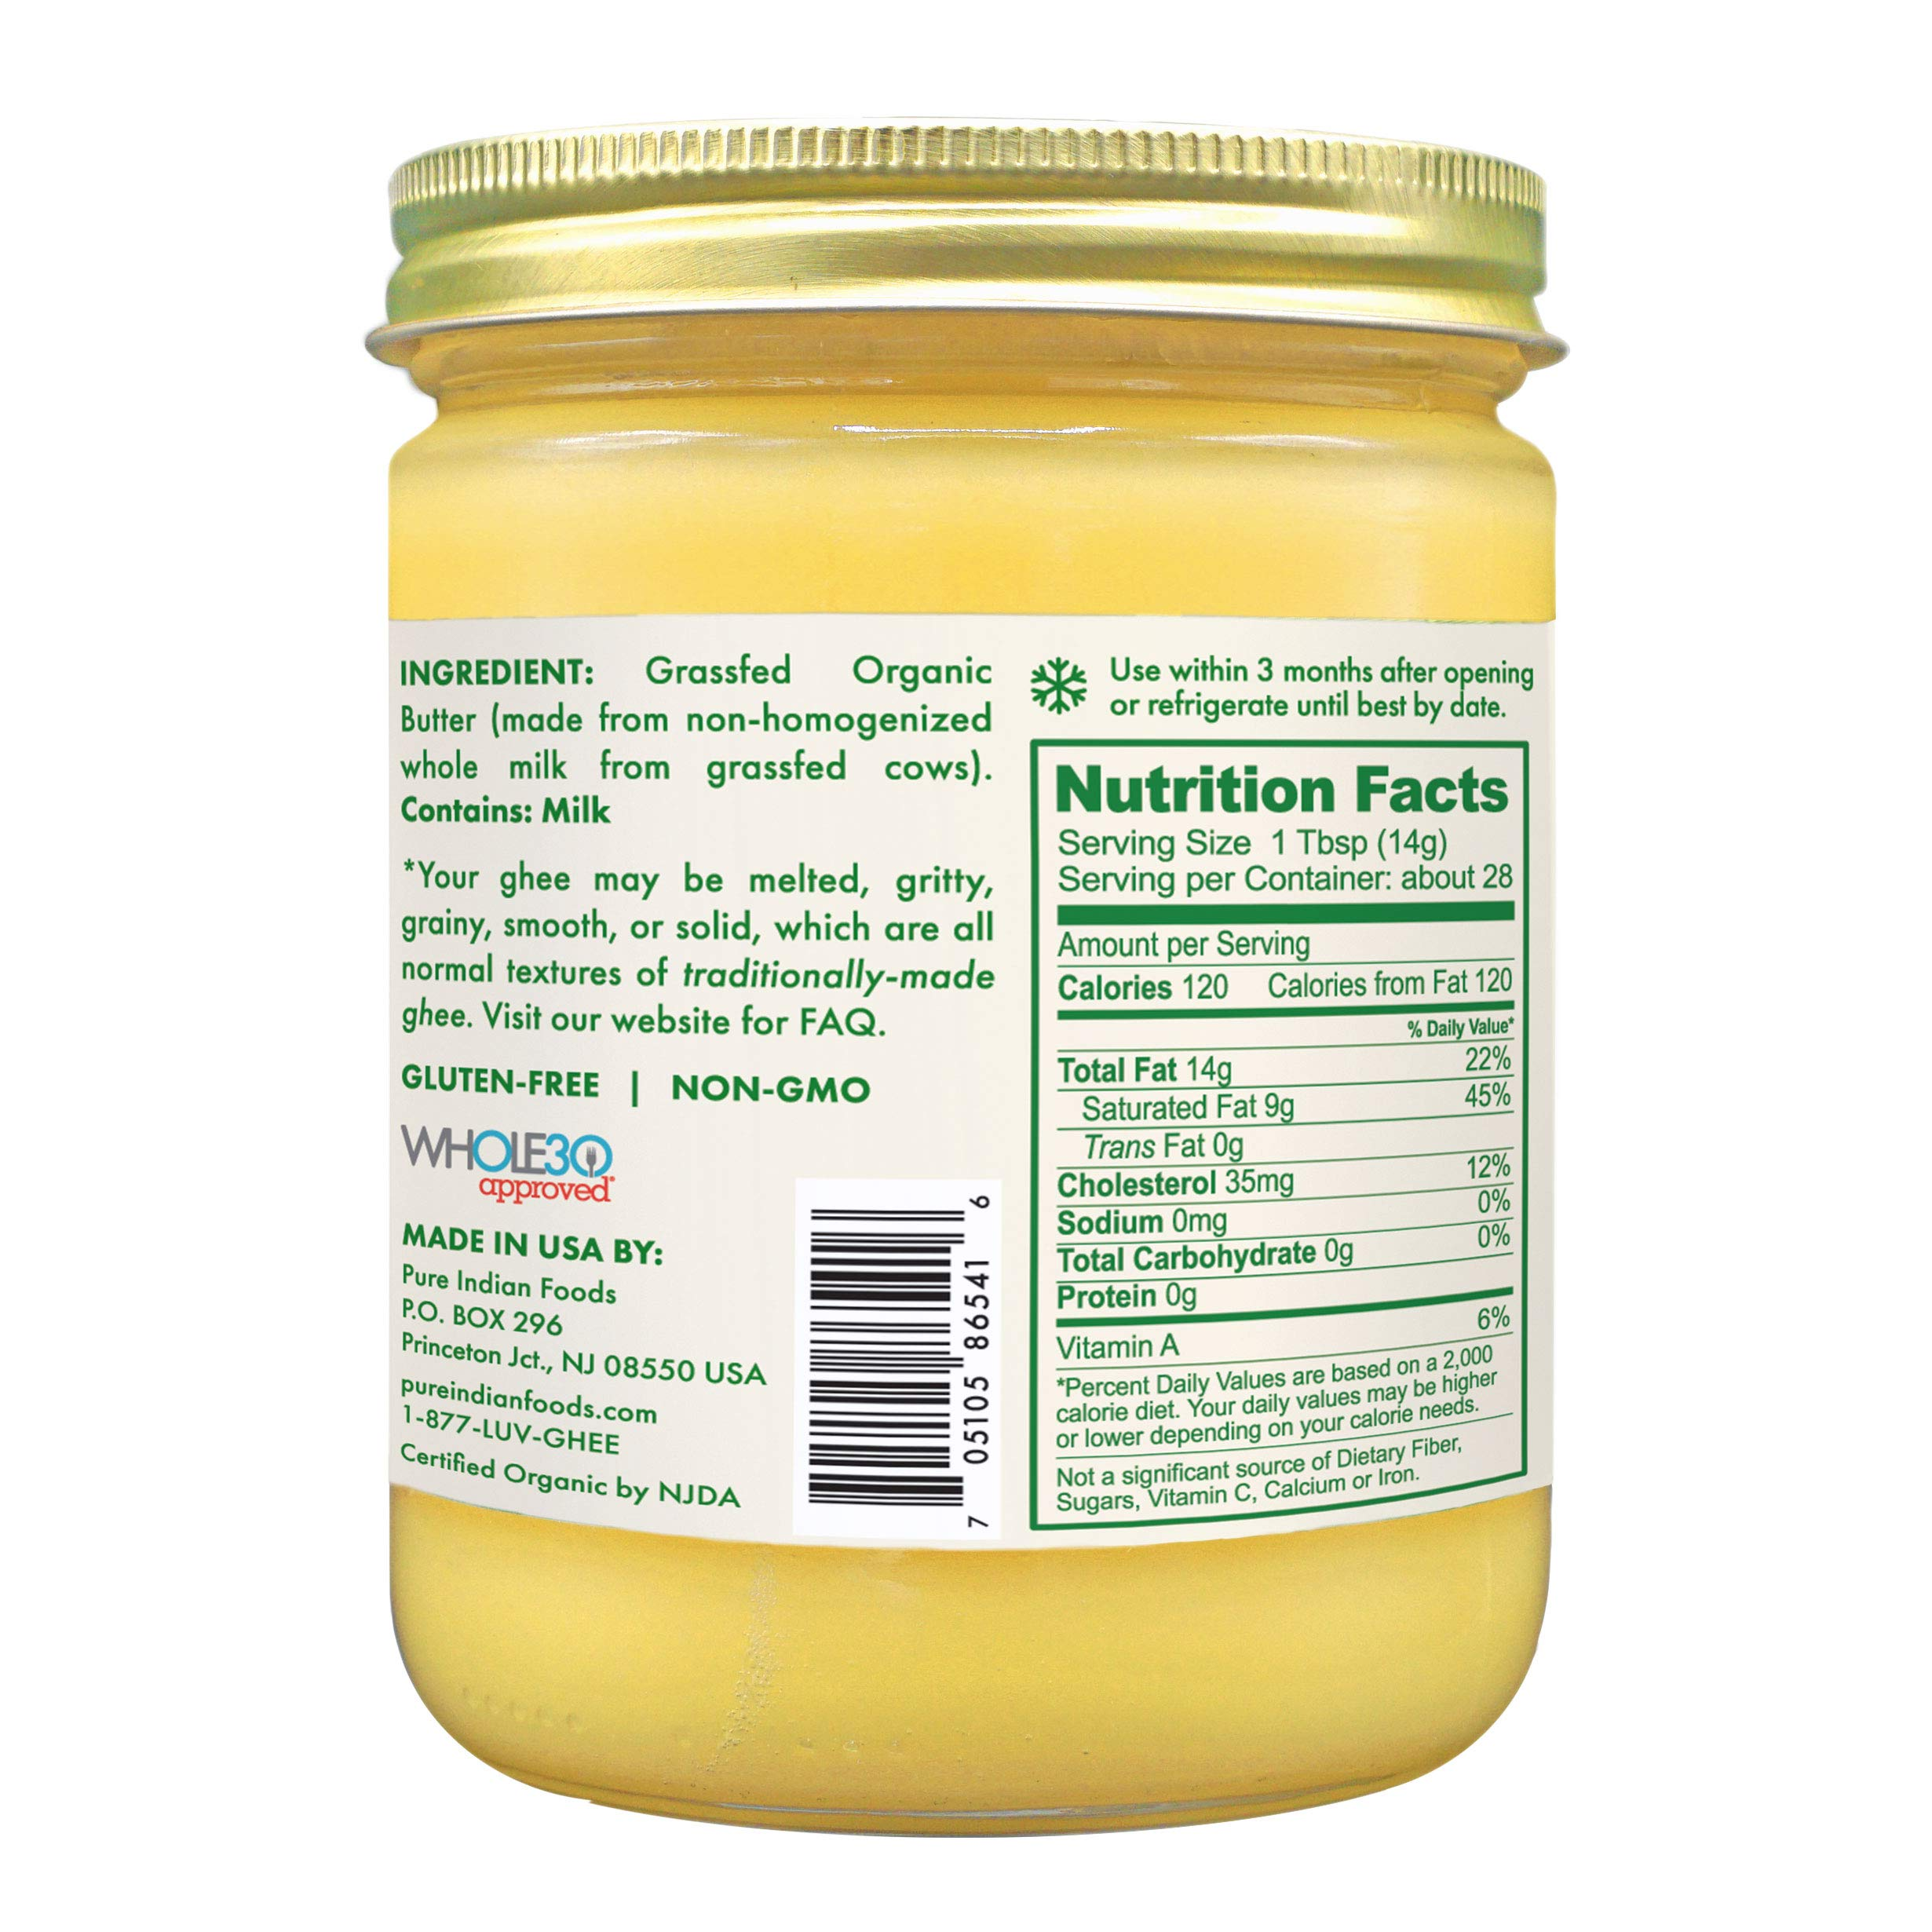 Grassfed Organic Ghee 14 oz (One Pint or 16 fl oz) by Pure Indian Foods (Image #4)